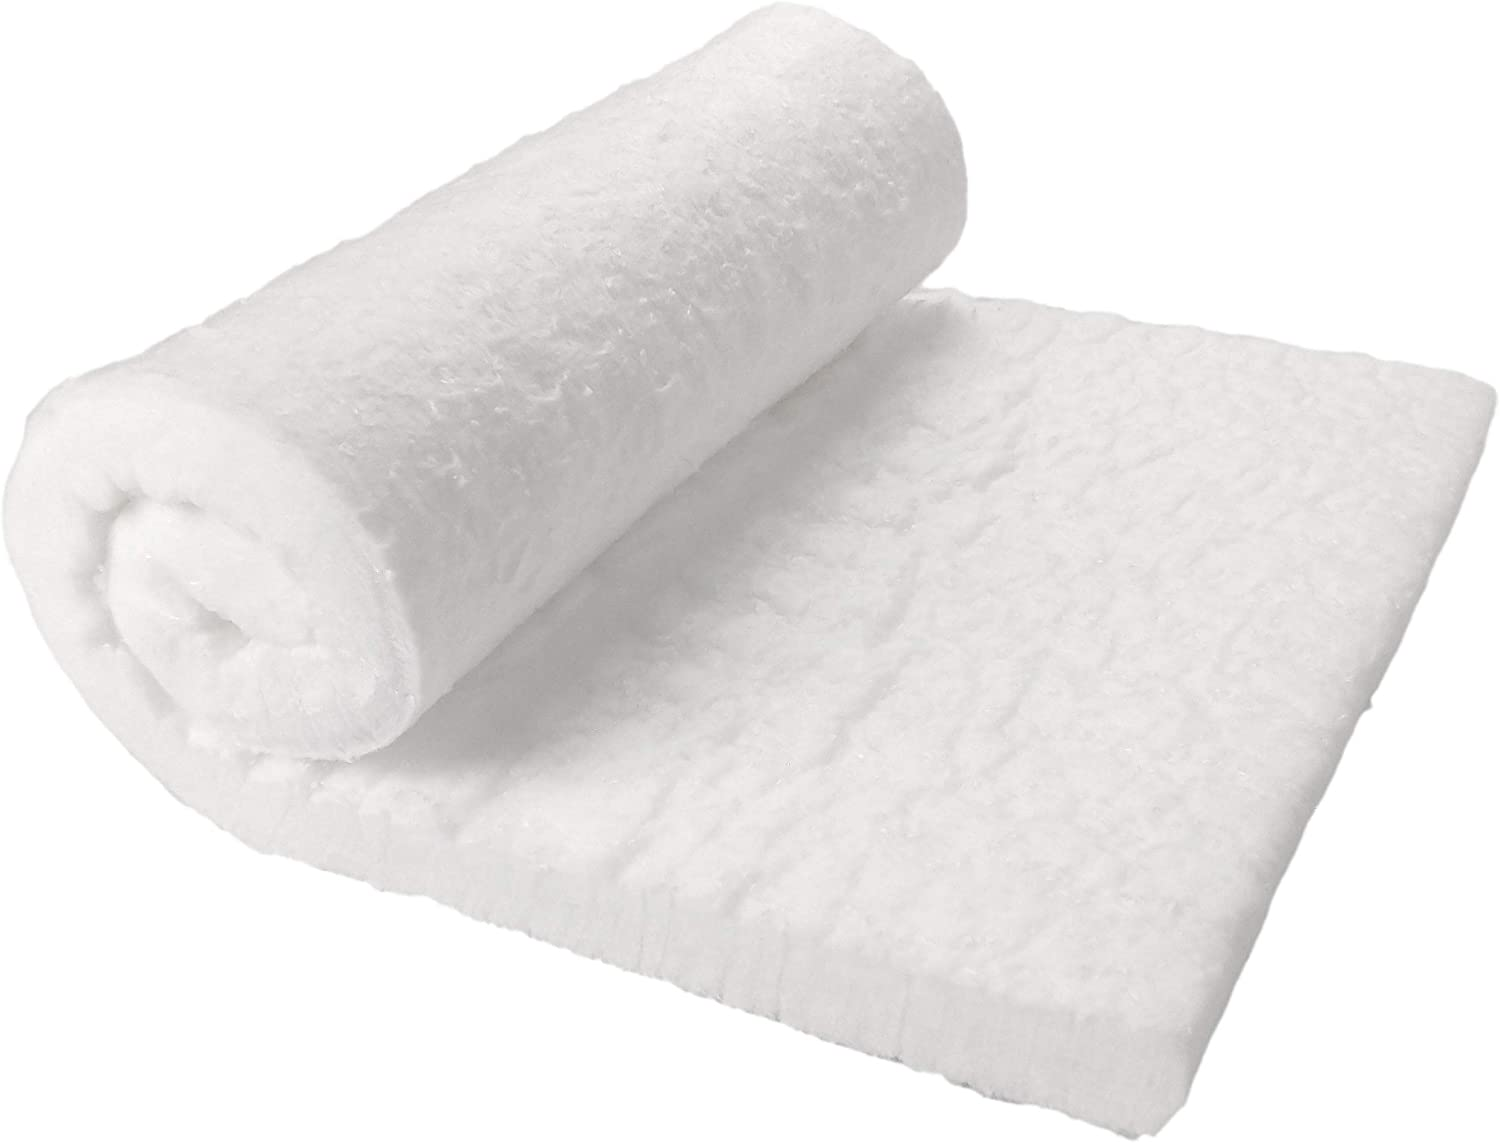 "Lynn Manufacturing Kaowool Ceramic Fiber Insulation, 1"" Thick 12"" x 24"", 2400F Fireproof Insulation Blanket, 3023E"